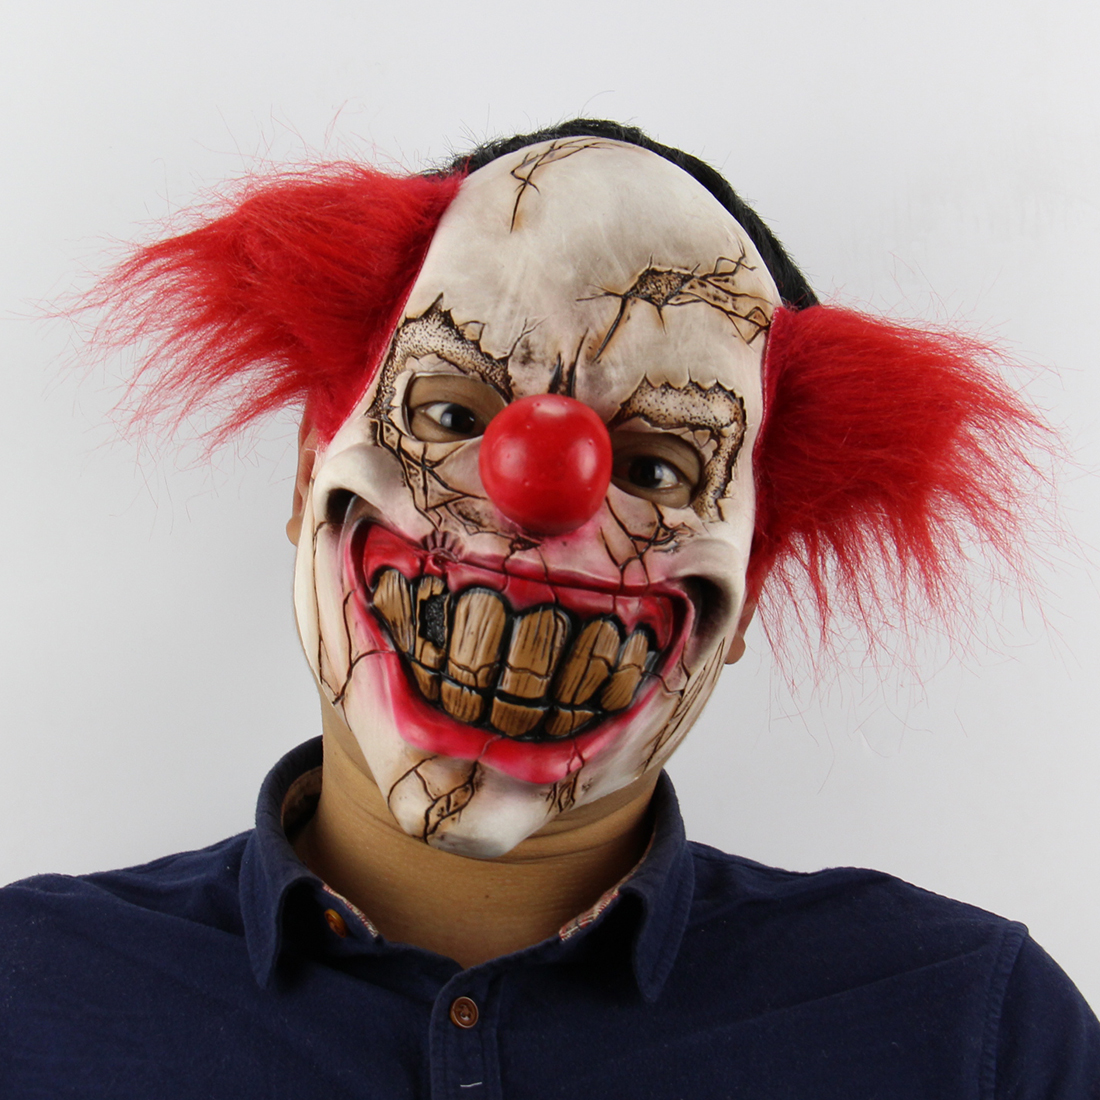 Halloween Scary Clown Mask Props Clown Hedging Masker Realistic Latex Masque <font><b>Terror</b></font> Maske For Halloween Horror Decoration Masks image